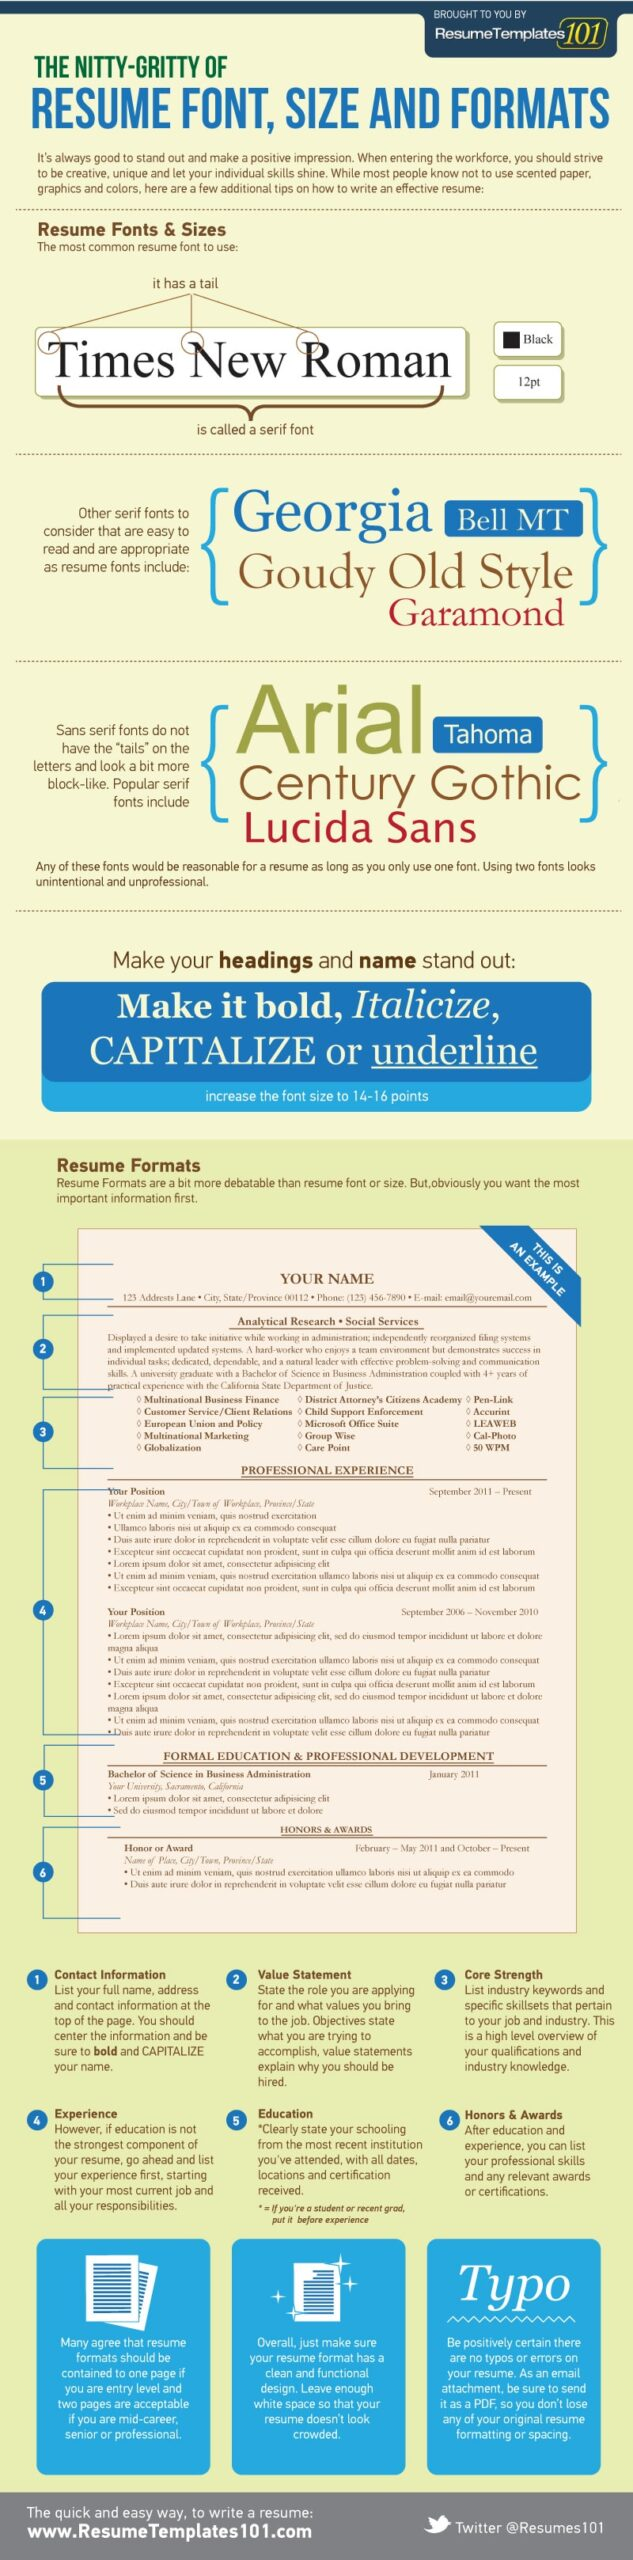 the best resume font size and format for fonts portfolio manager quality assurance sample Resume Best Font Size For Resume